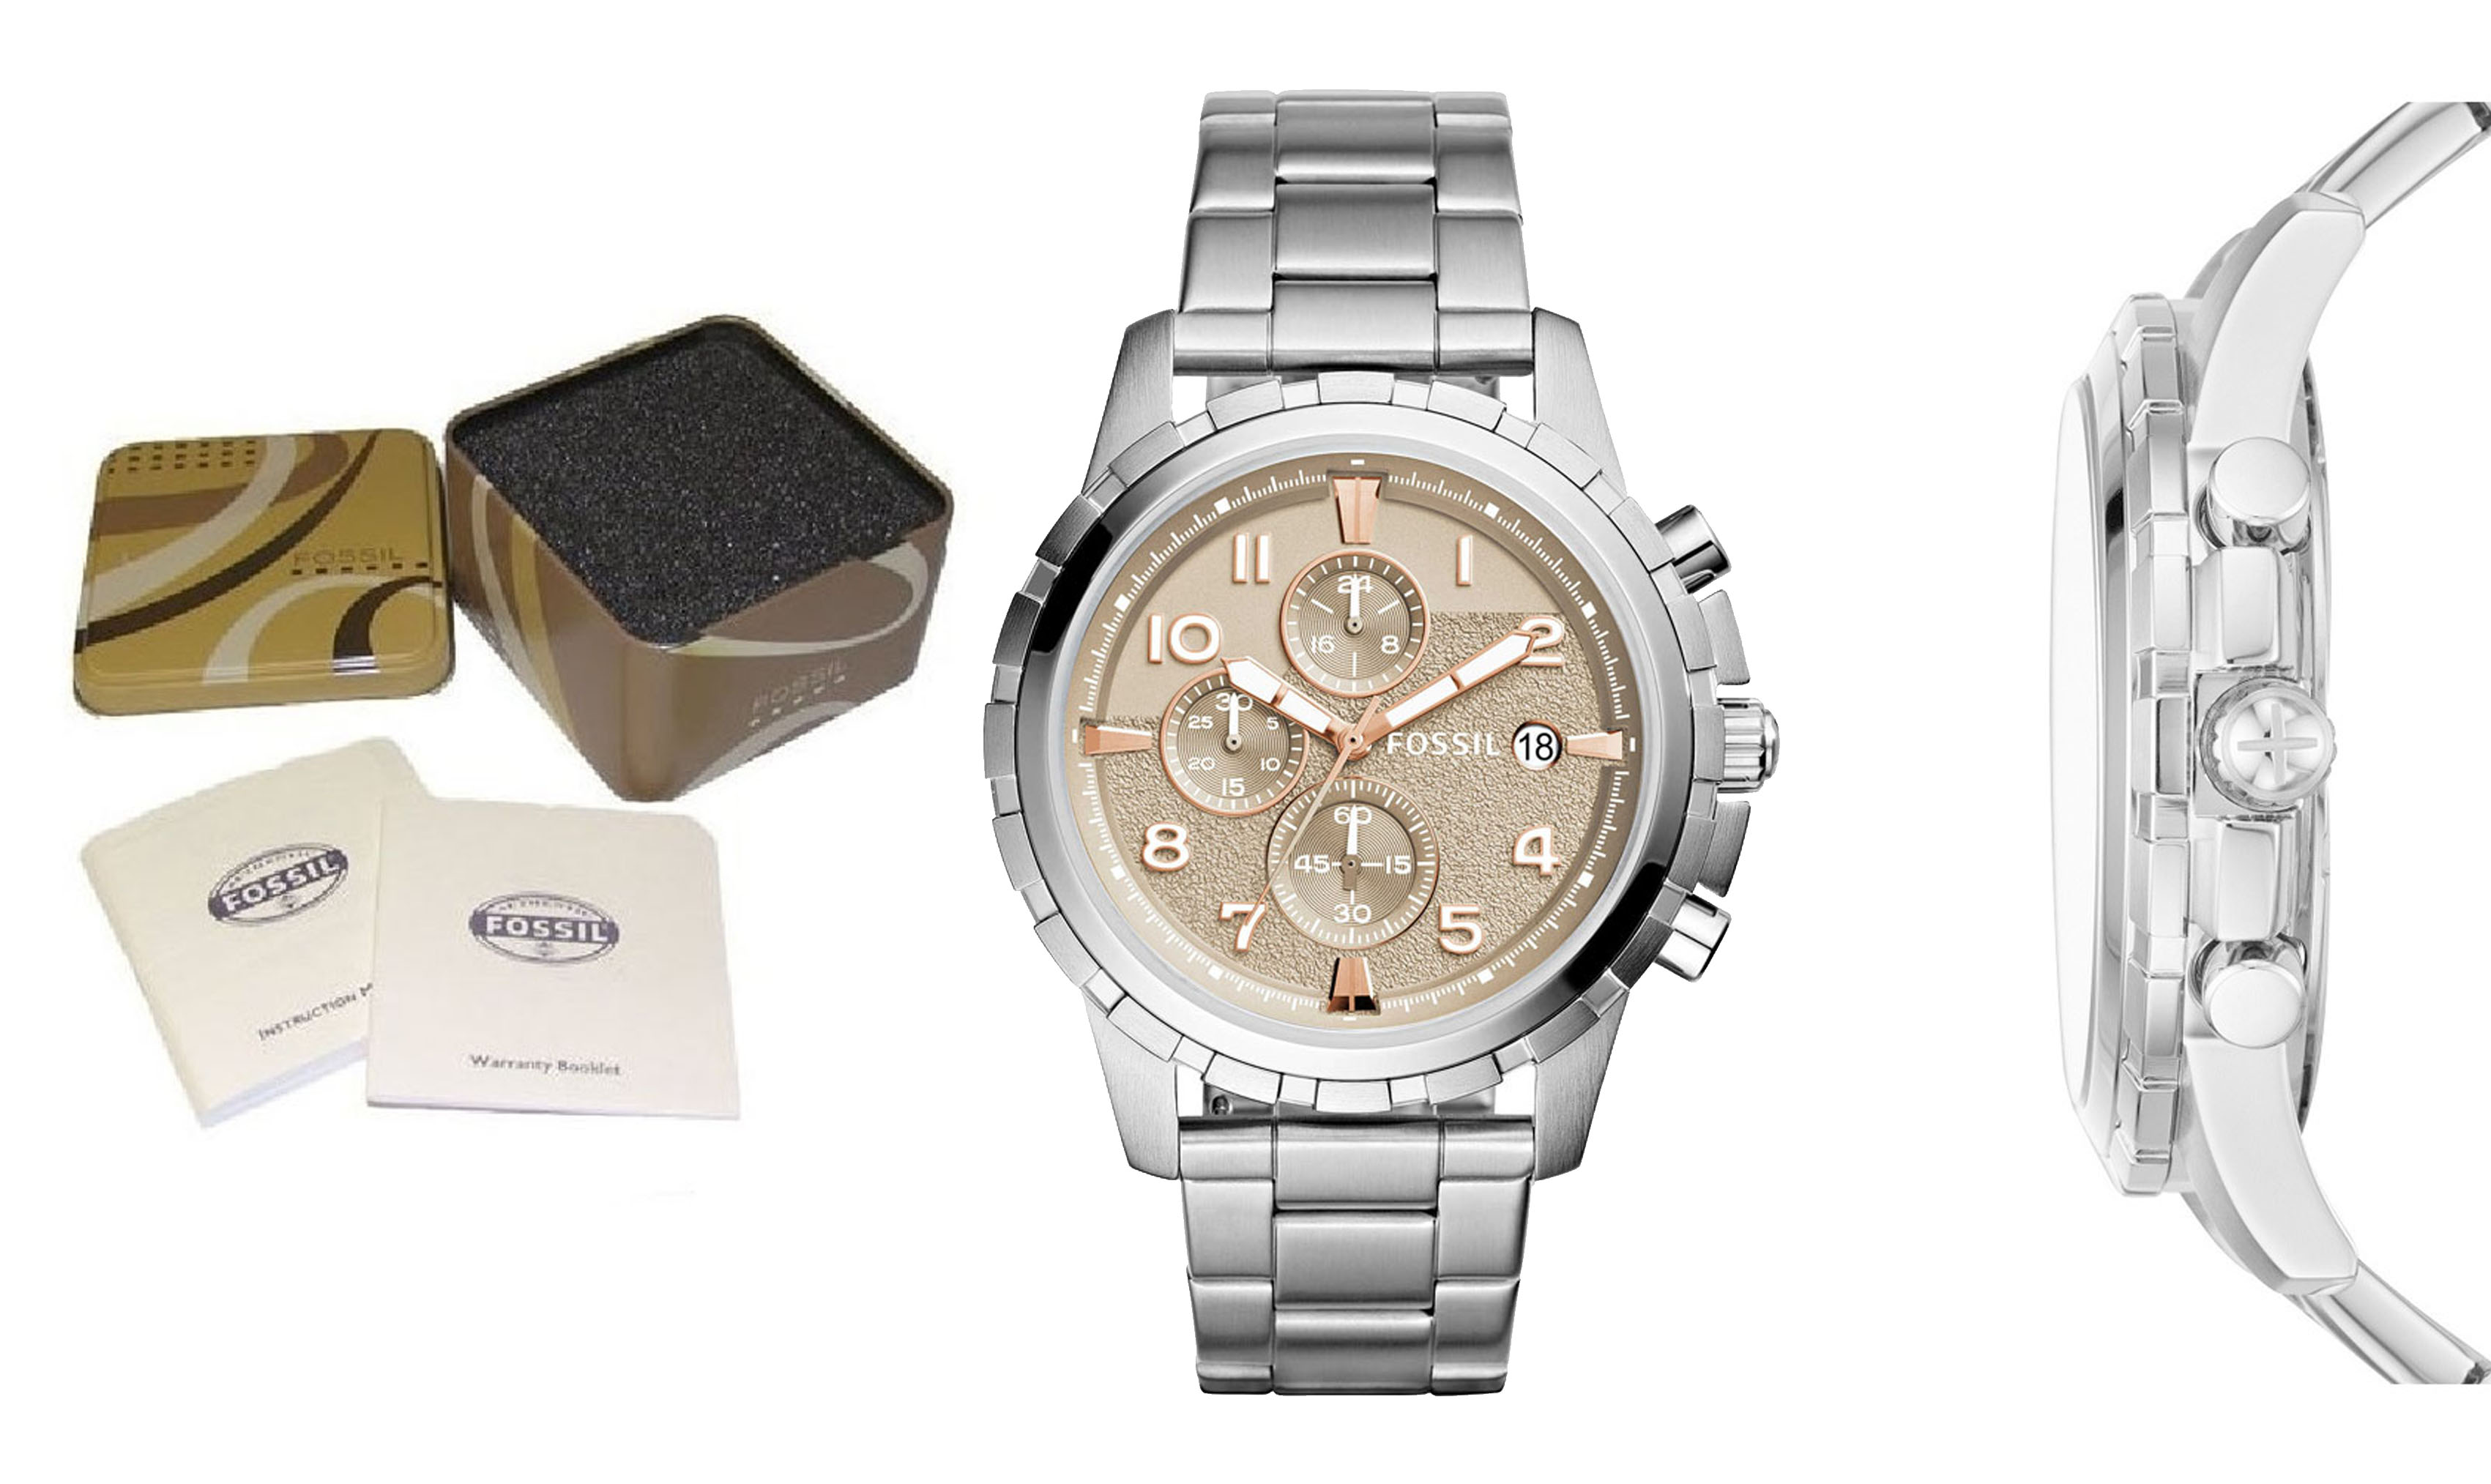 Fossil Watches For Men's No. FS5339